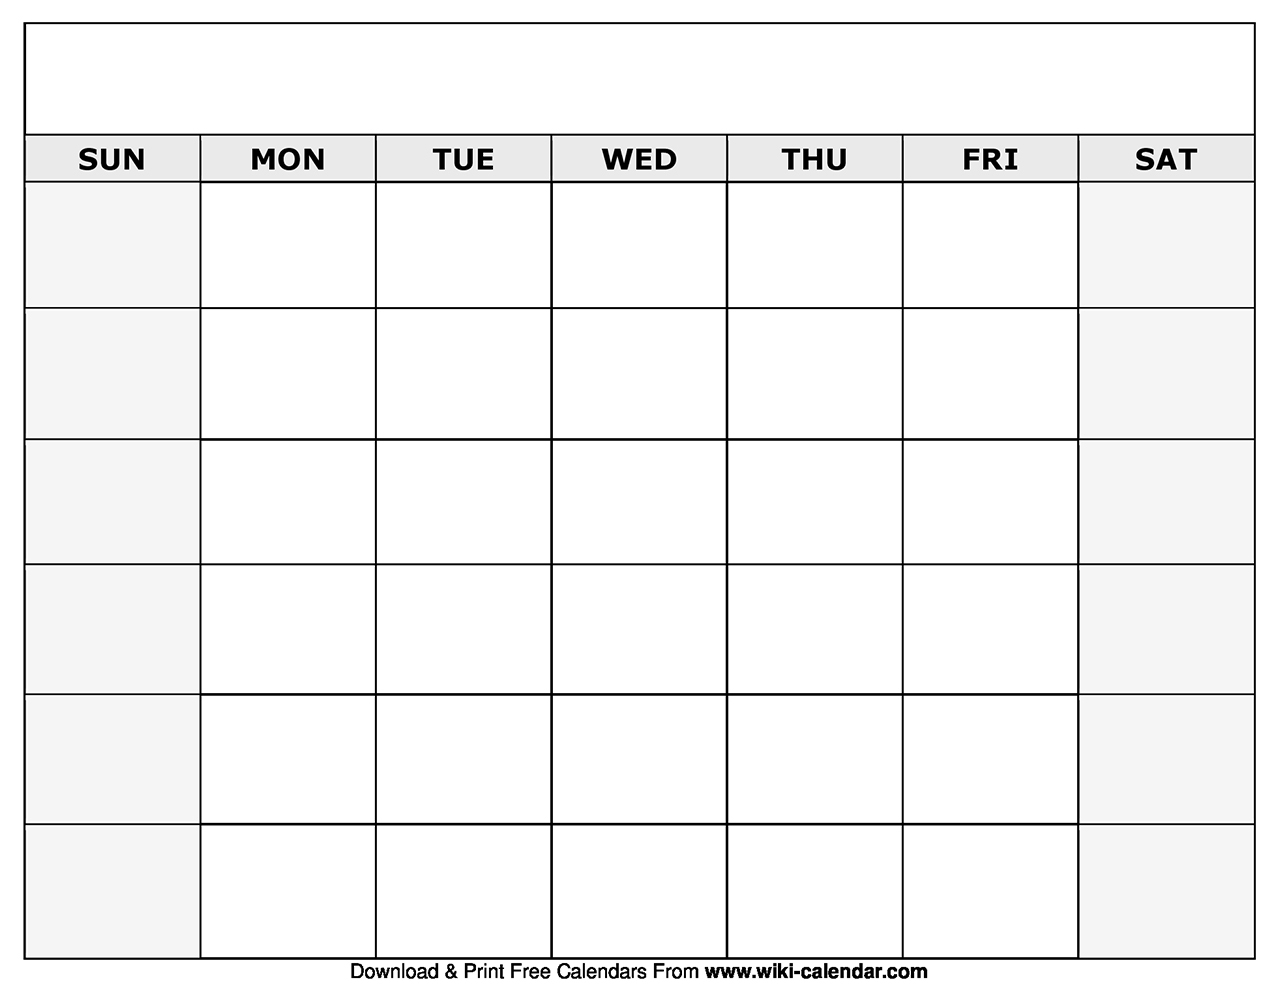 Blank Calendar With Only Weekdays